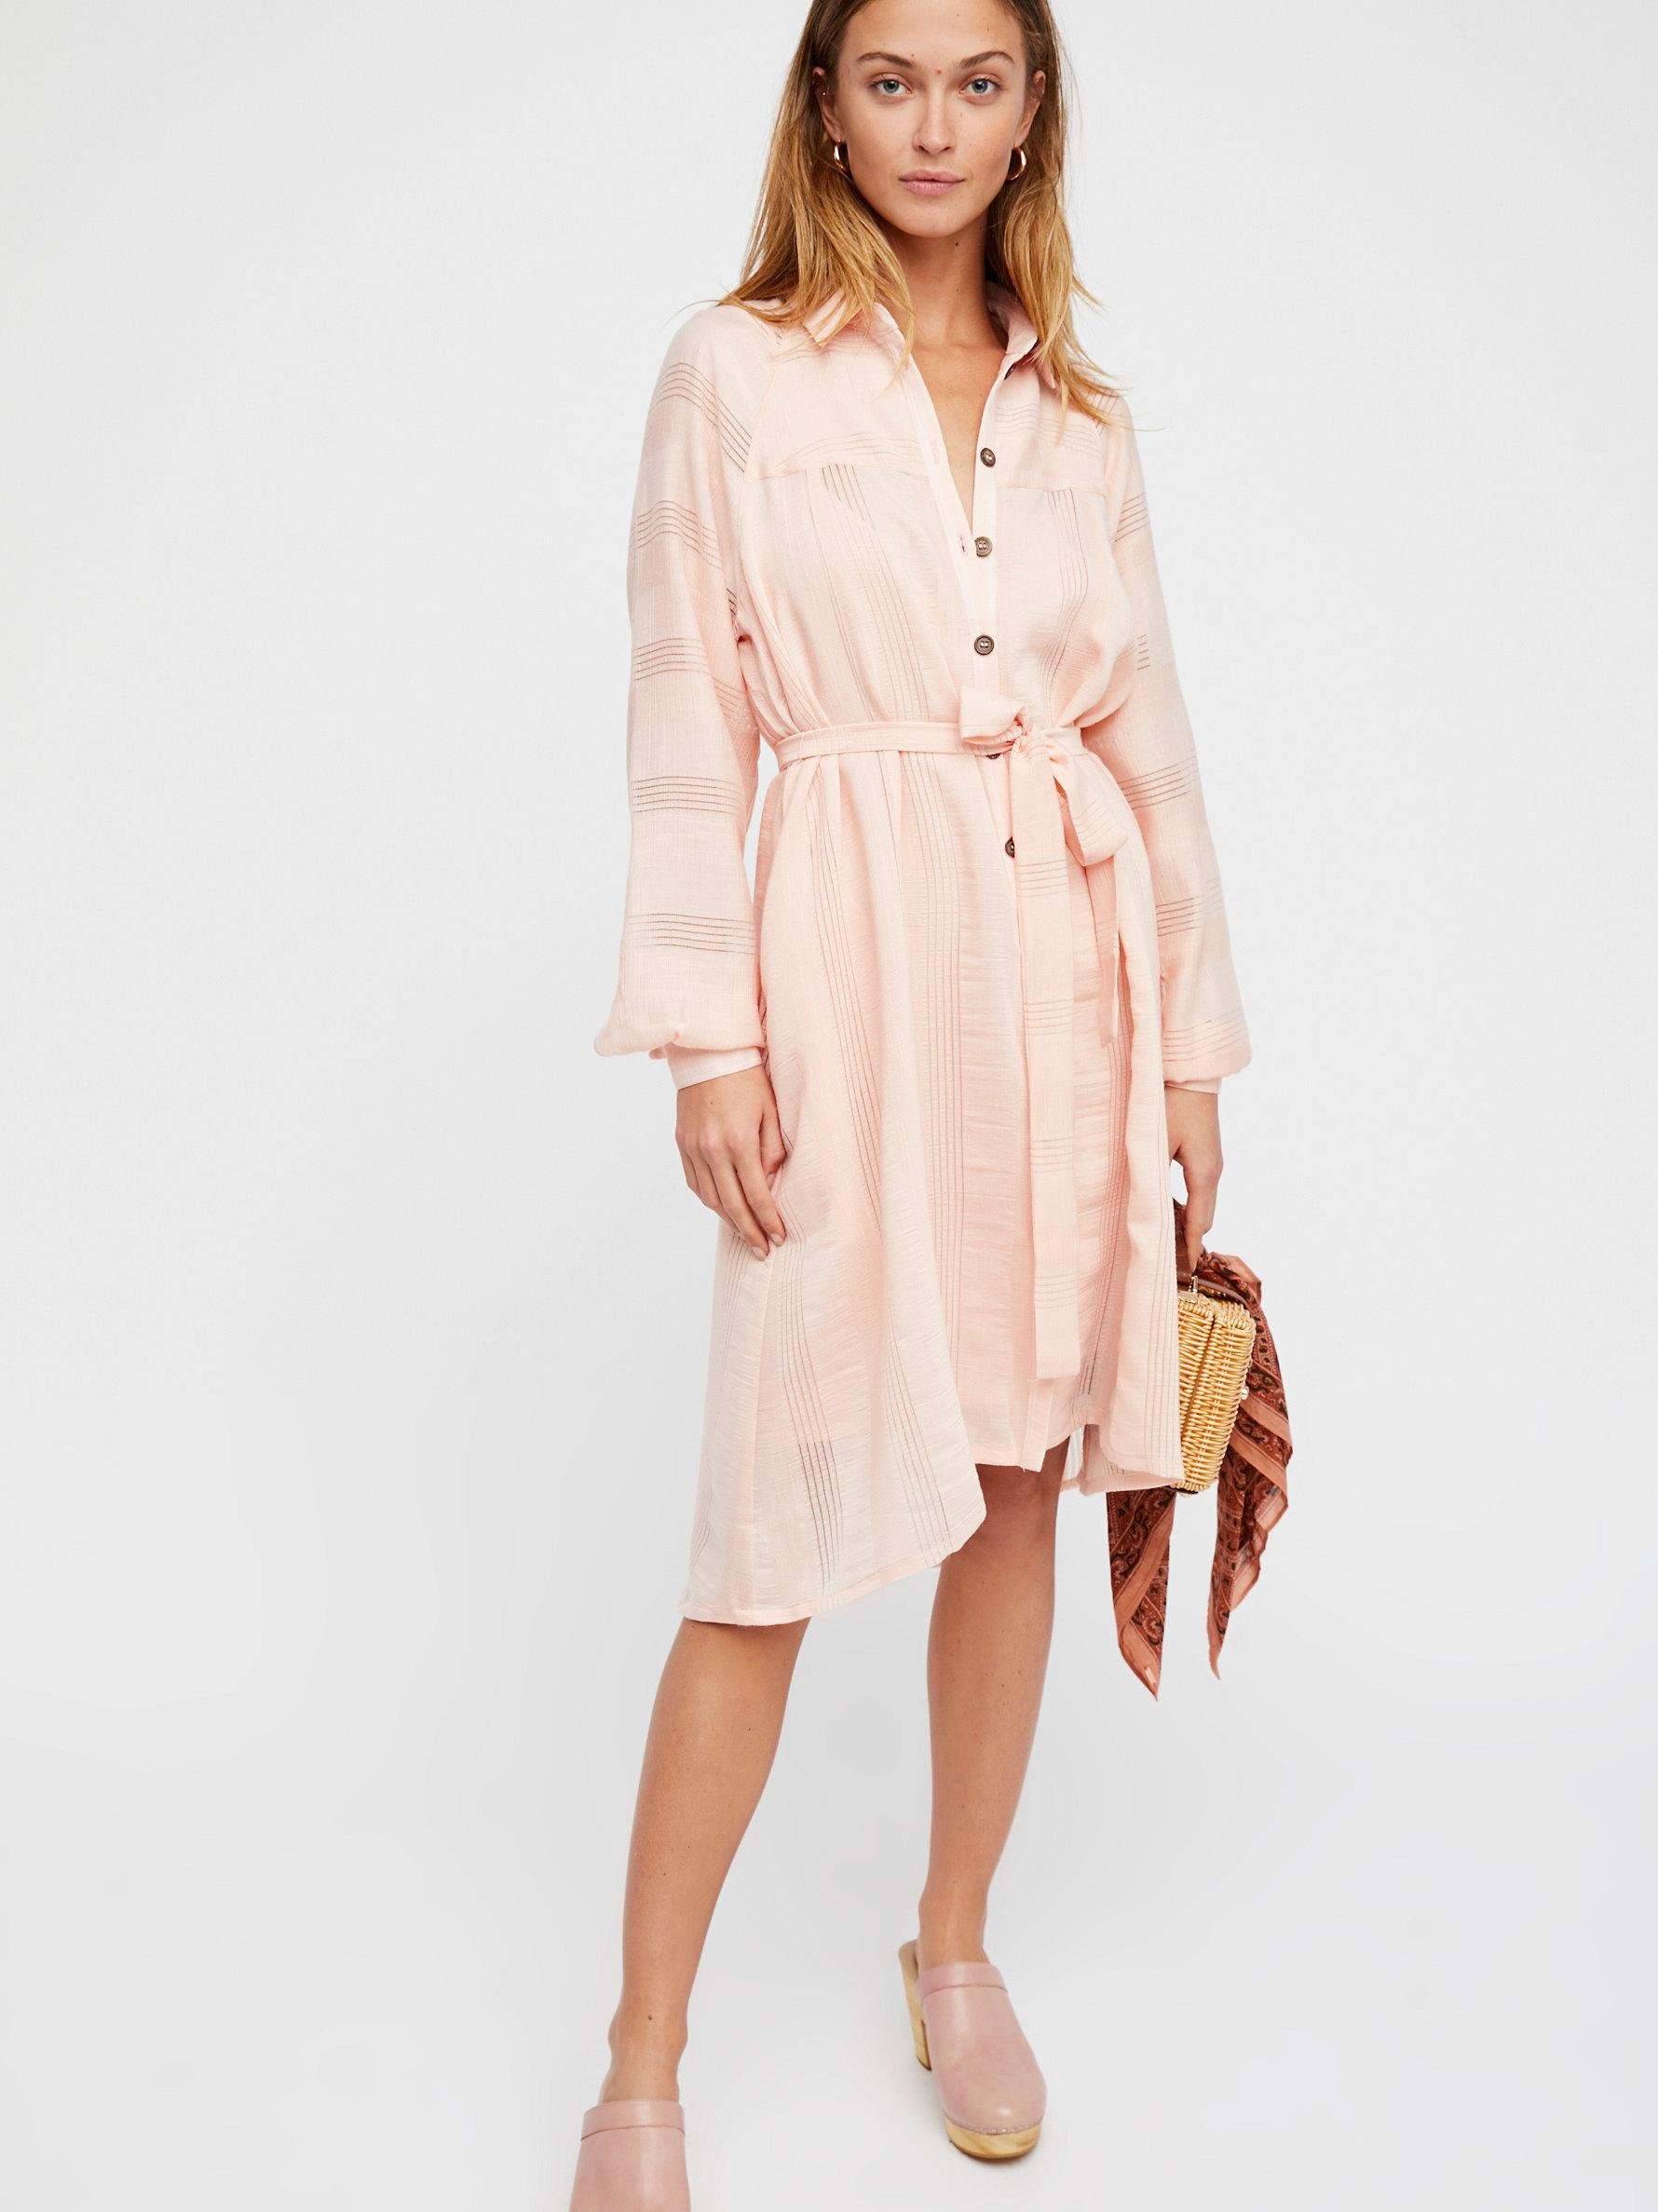 8bfe165869 Free People Great Escape Shirt Dress in Pink - Lyst